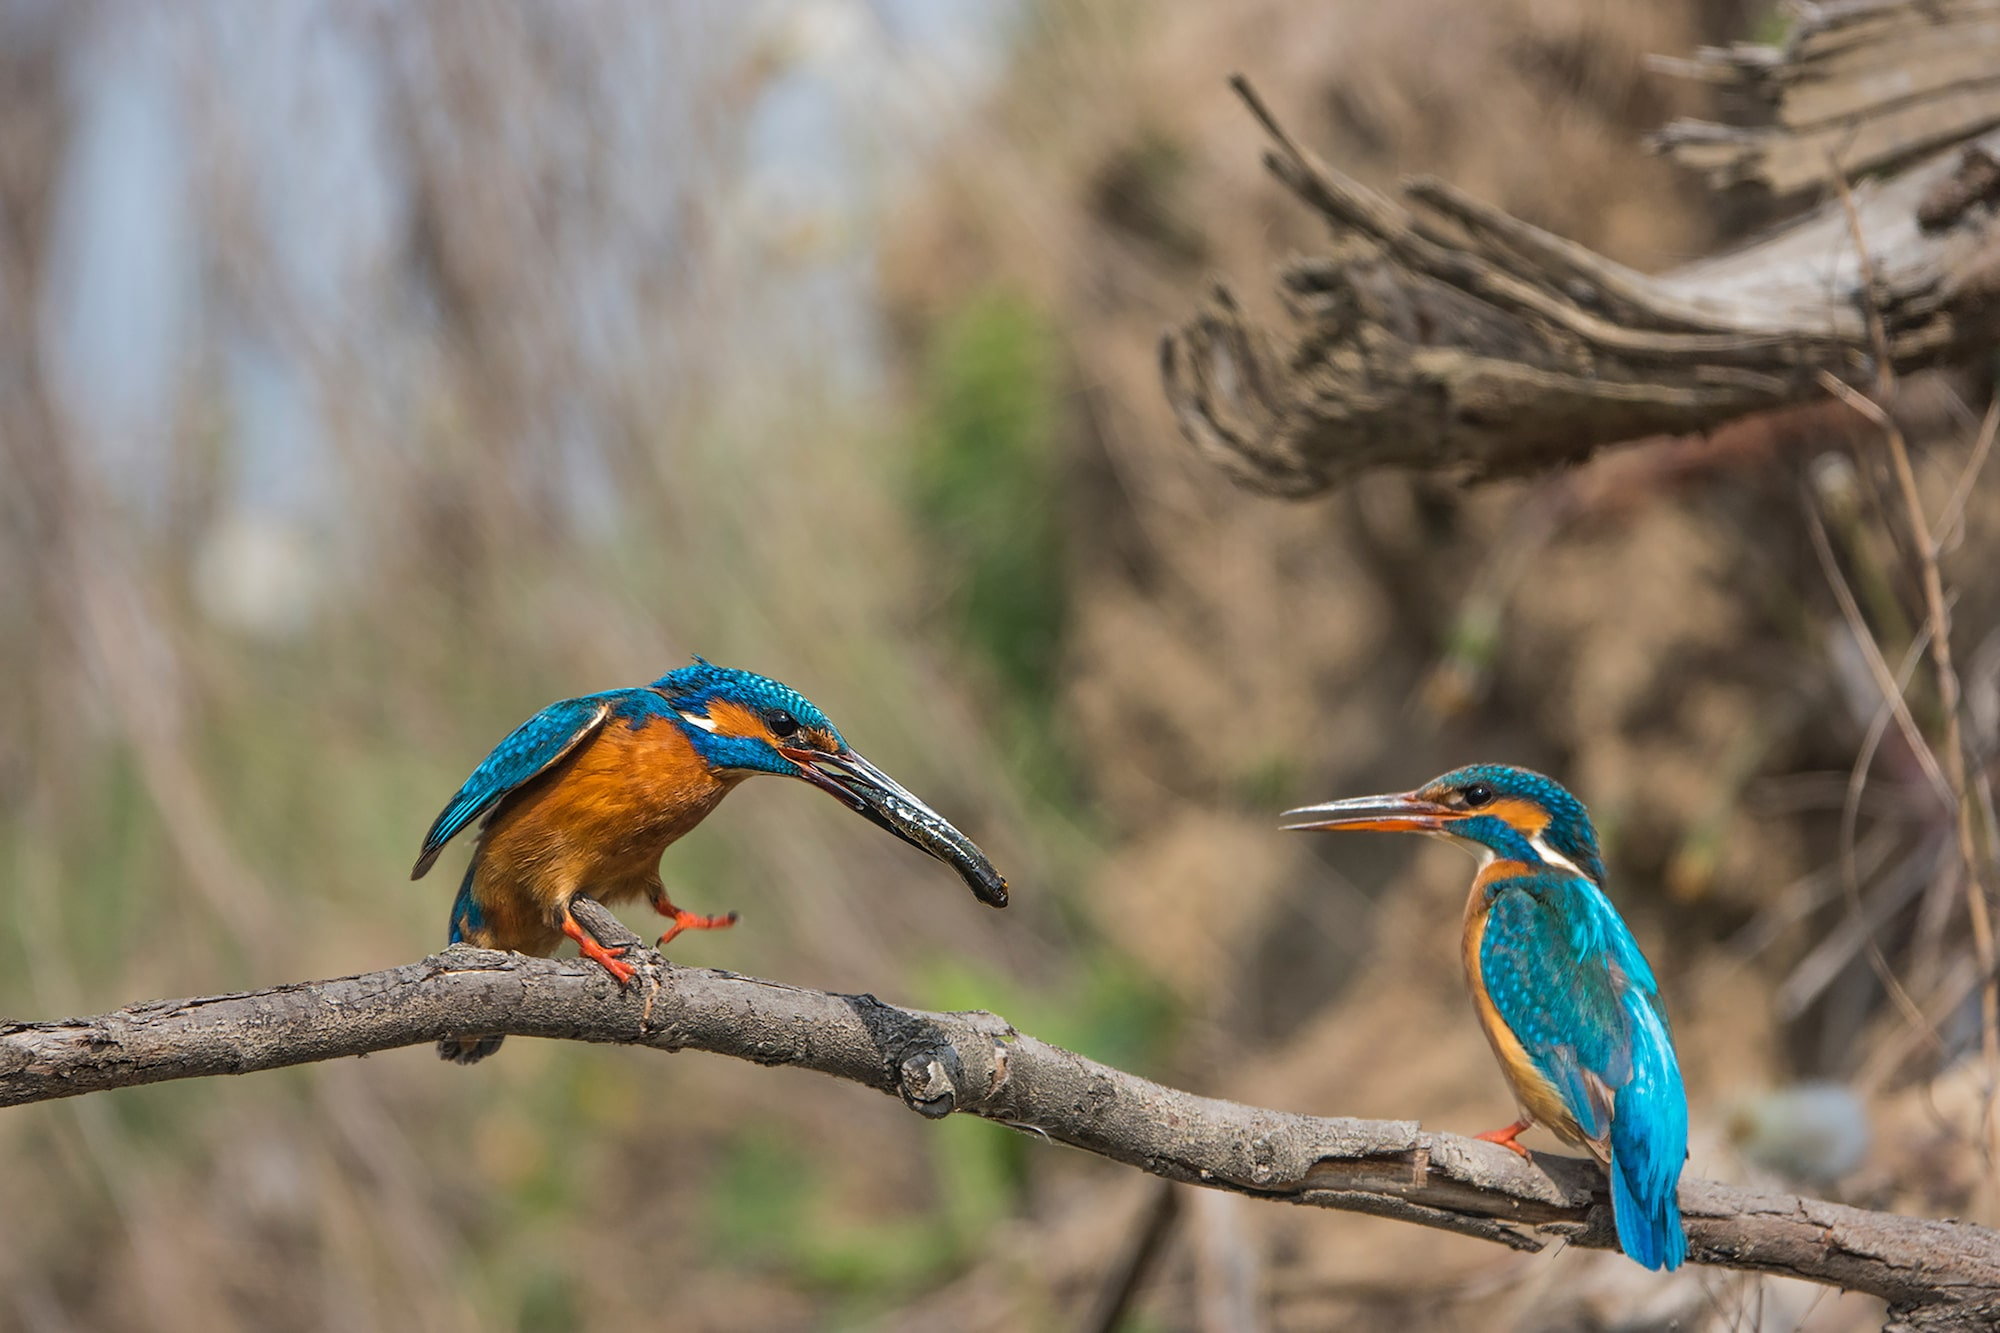 kaisa lappalainen sony rx10IV a pair of kingfishers relaxing on a tree bran